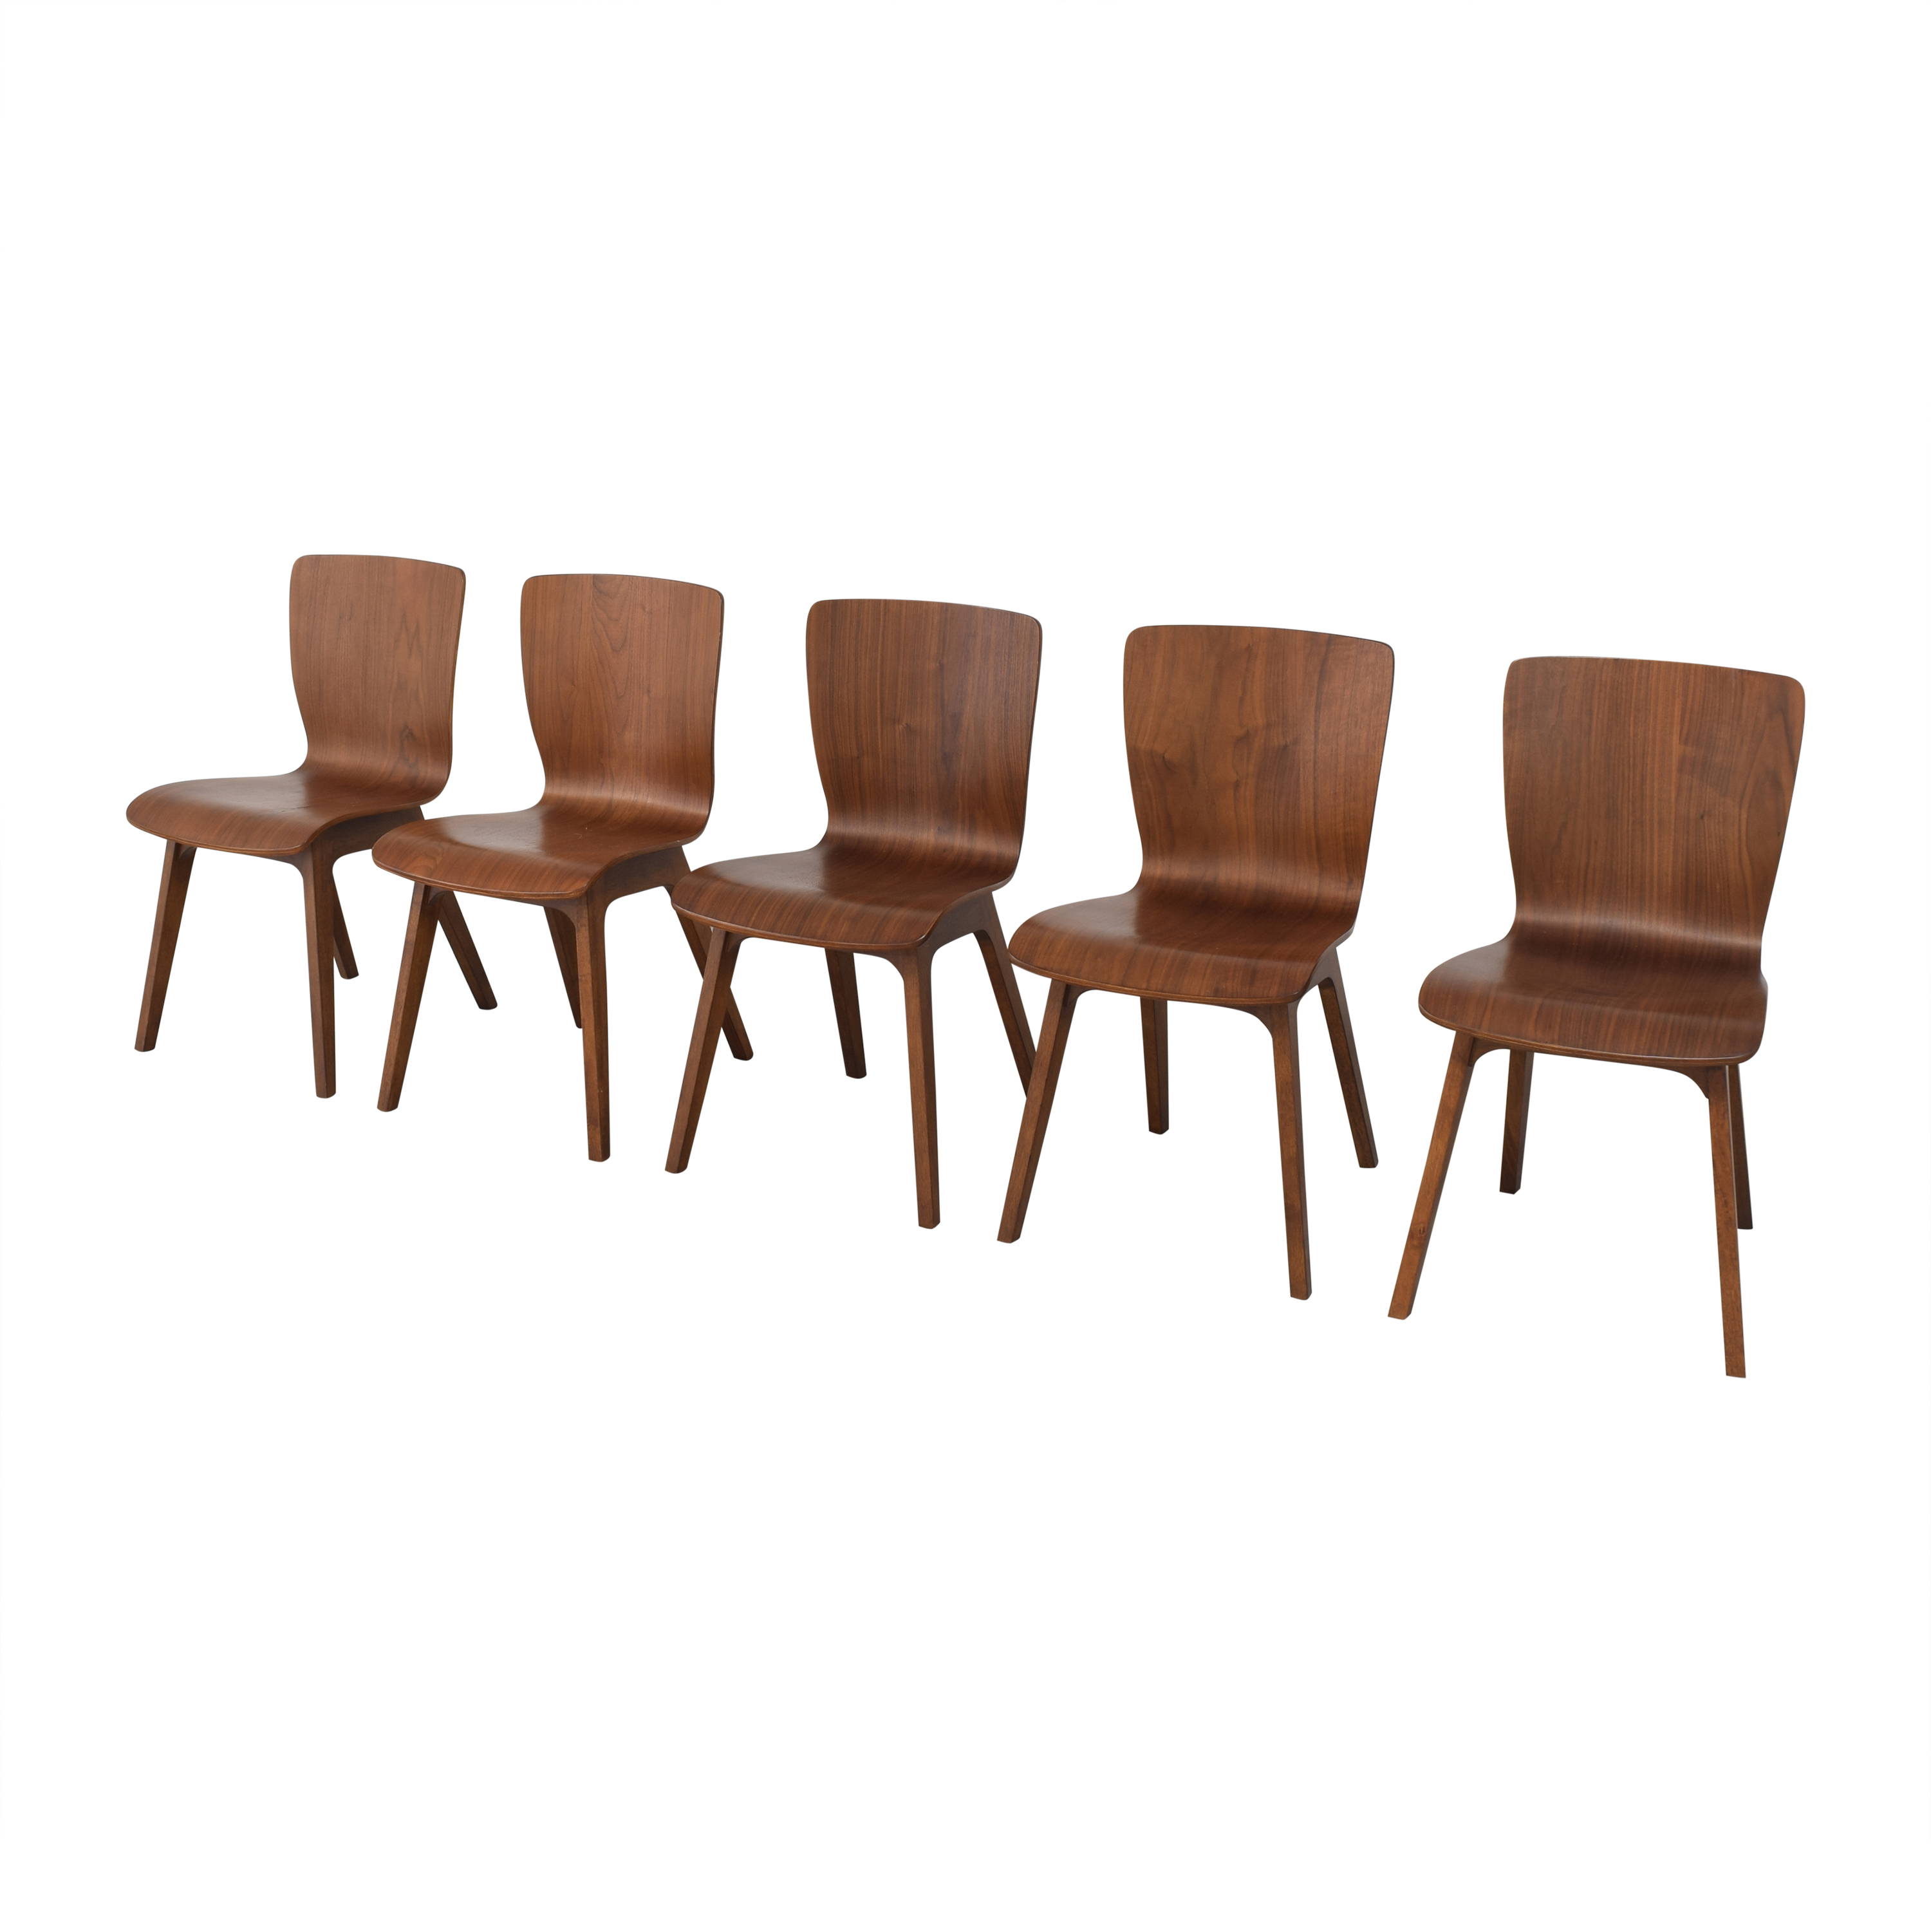 buy West Elm Crest Bentwood Dining Chairs West Elm